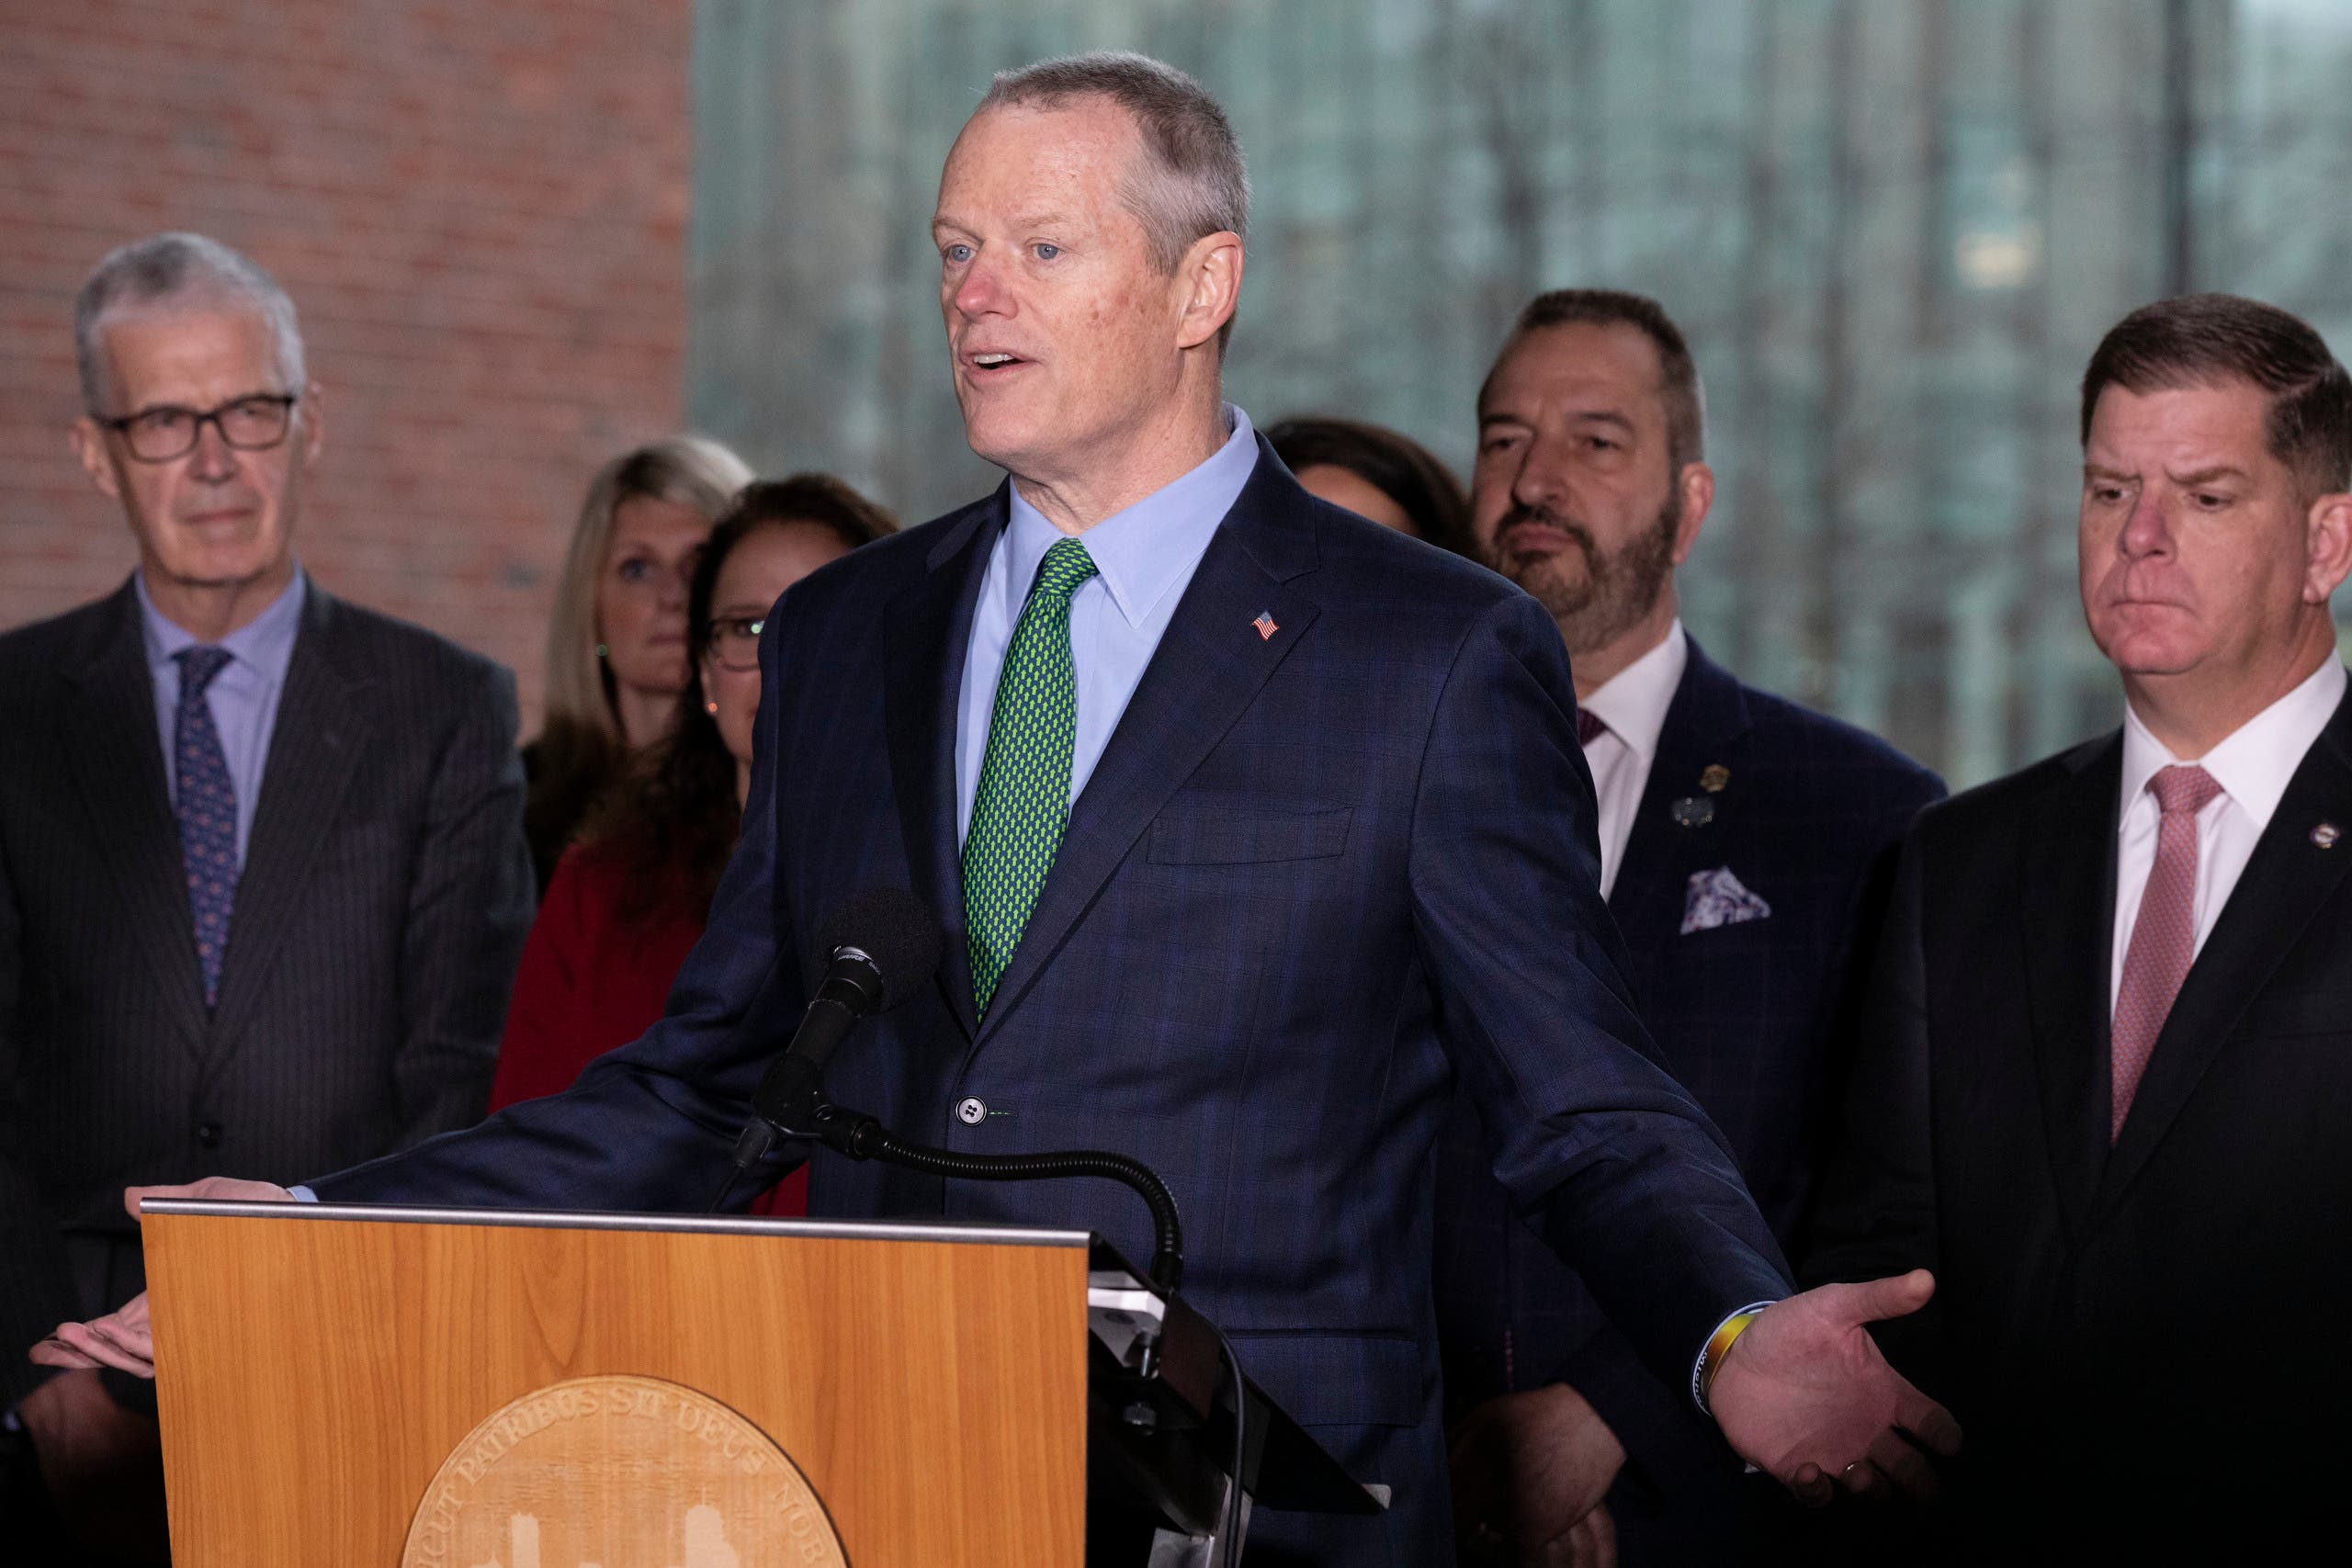 Massachusetts Governor Charlie Baker, center, speaks during a news conference outside Boston City Hall in front of Mayor Marty Walsh, right, and CEO of the Boston Athletic Association Thomas Grilk, left, on Friday, March, 13, 2020, in Boston. (AP)